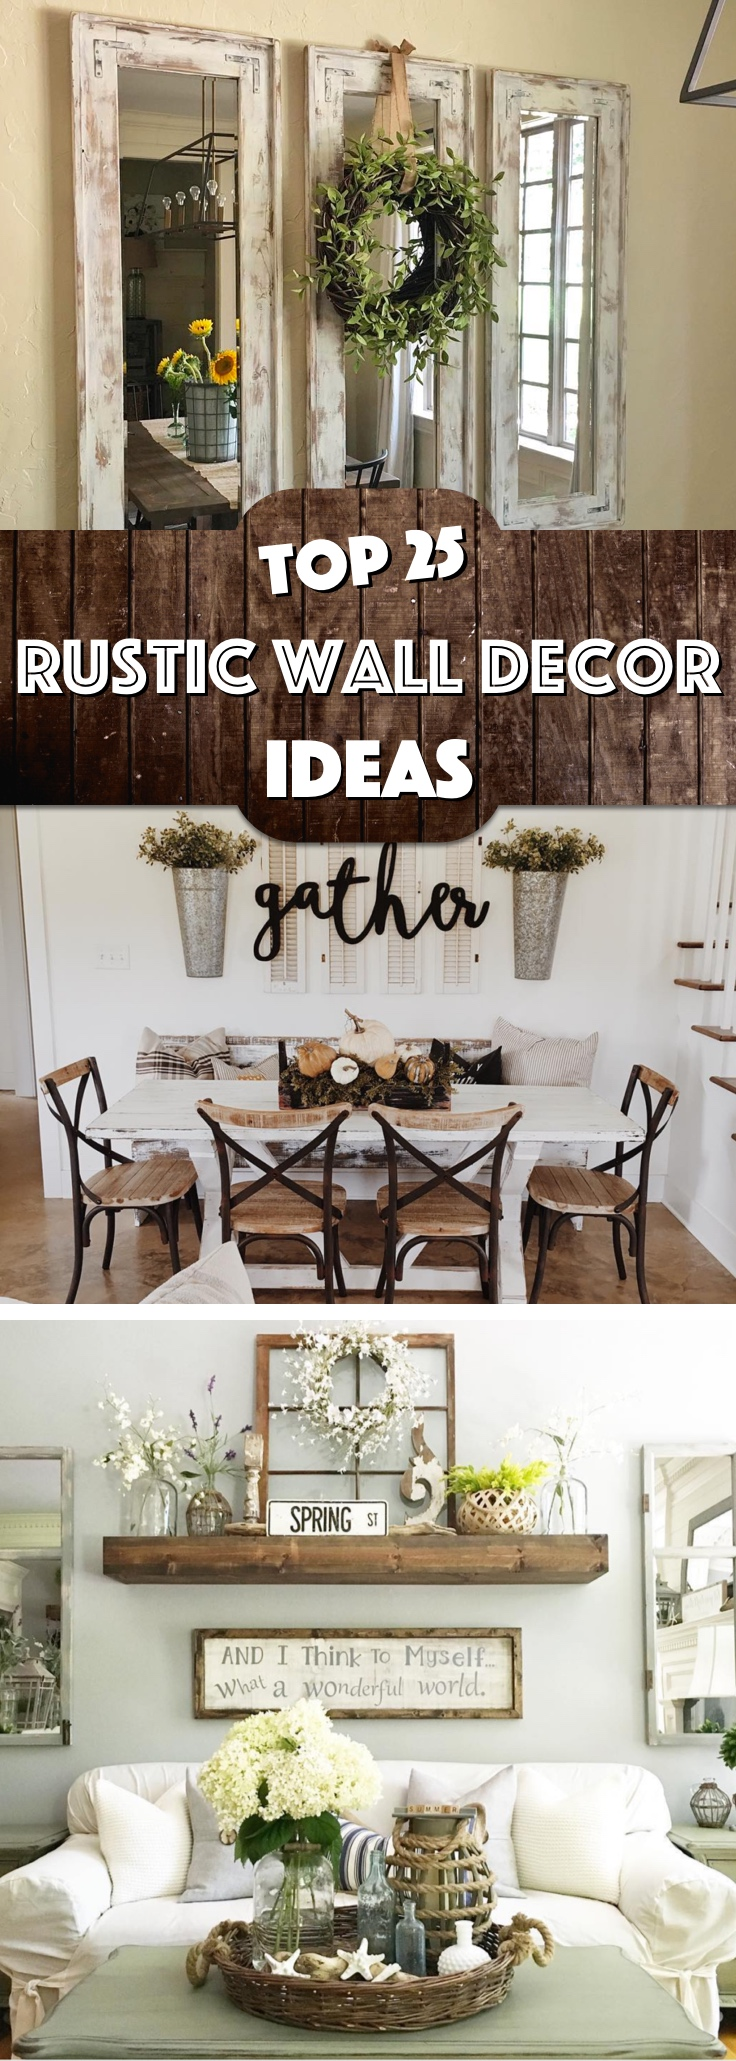 Rustic Photo Wall Decor : Must try rustic wall decor ideas featuring the most